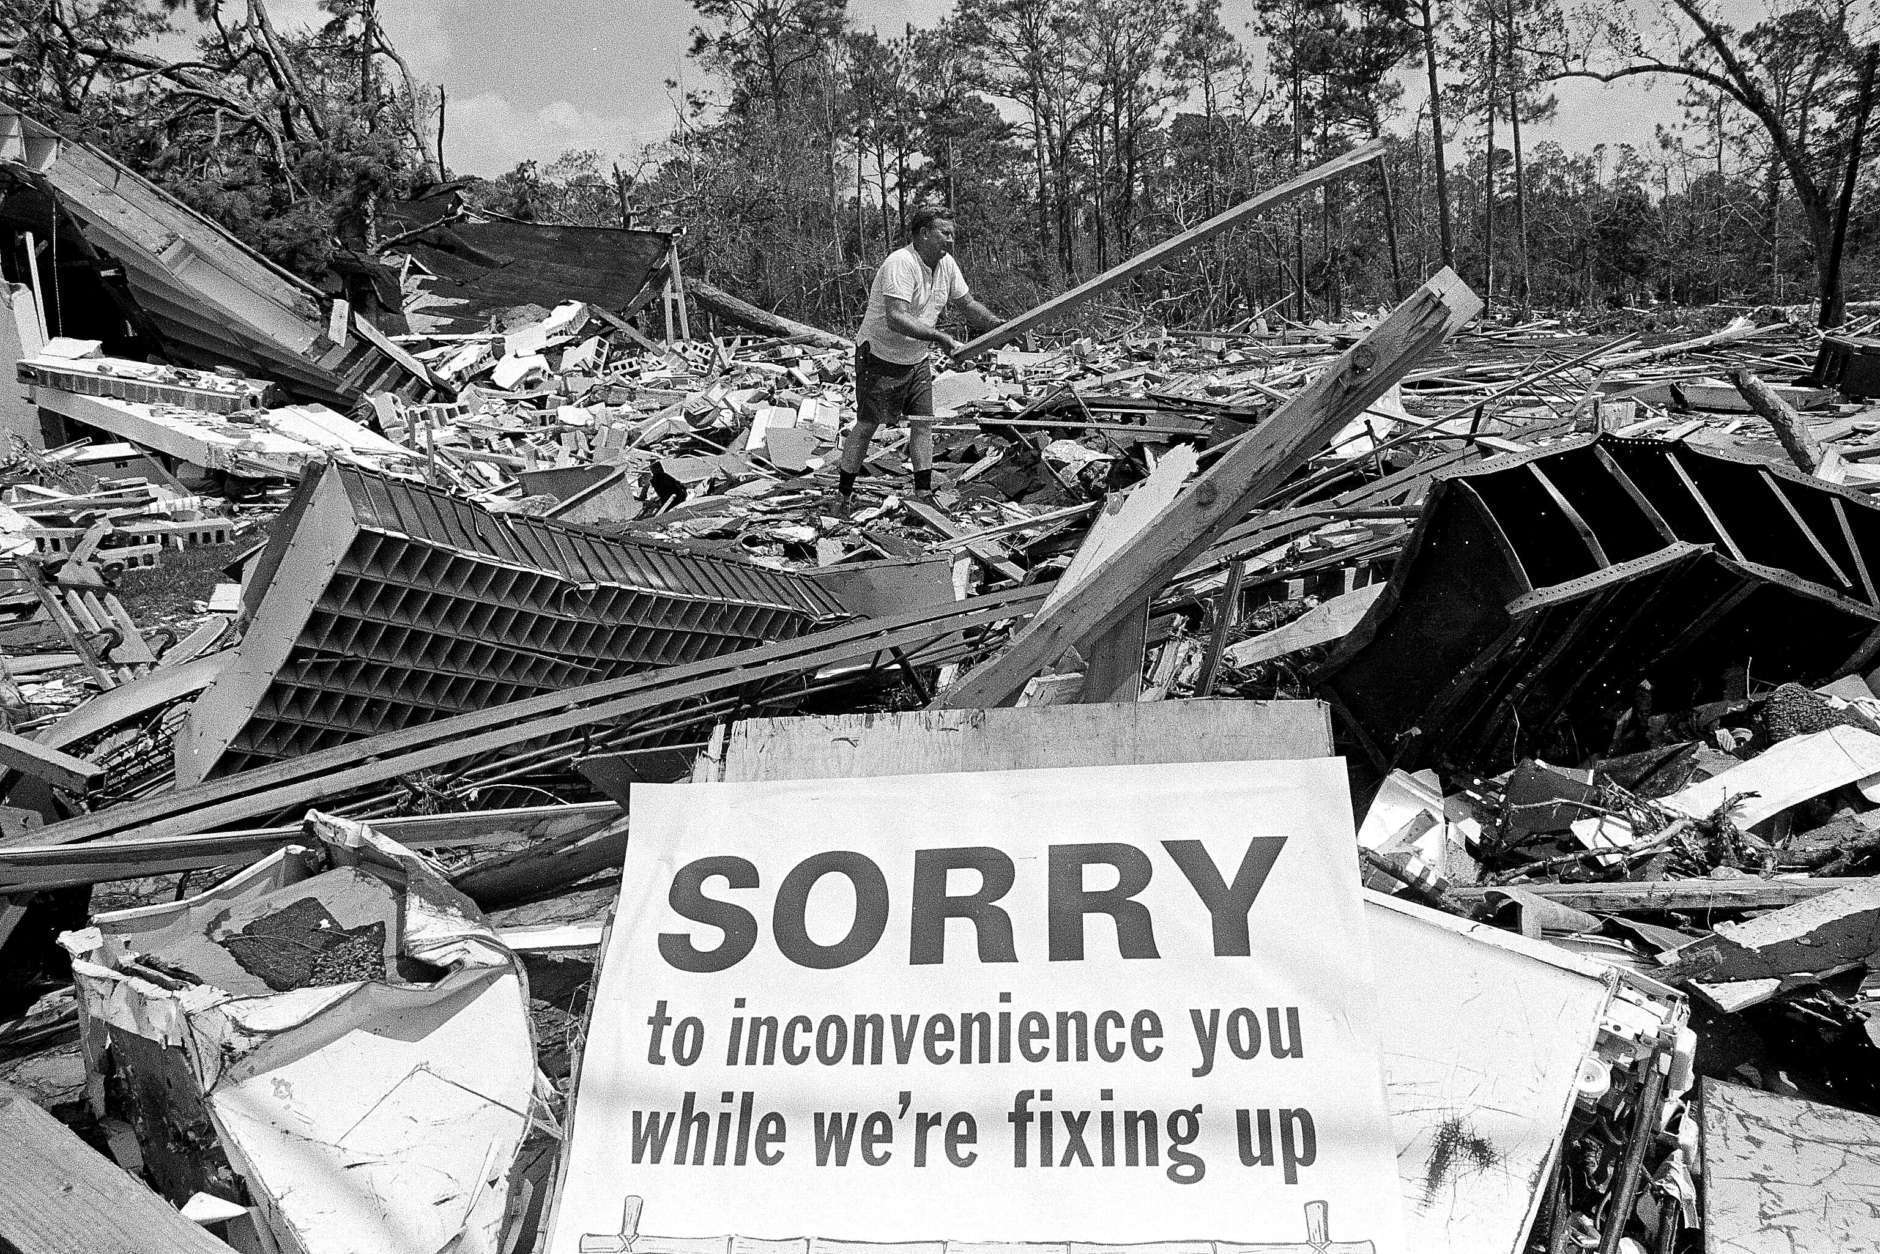 Service station owner H.A. Torgerson moves debris in what had been the town post office, next door to his station in Waveland, Miss., Sept. 11, 1969. Hurricane Camille had devastated the area about three weeks earlier. (AP Photo/Jack Thornell)